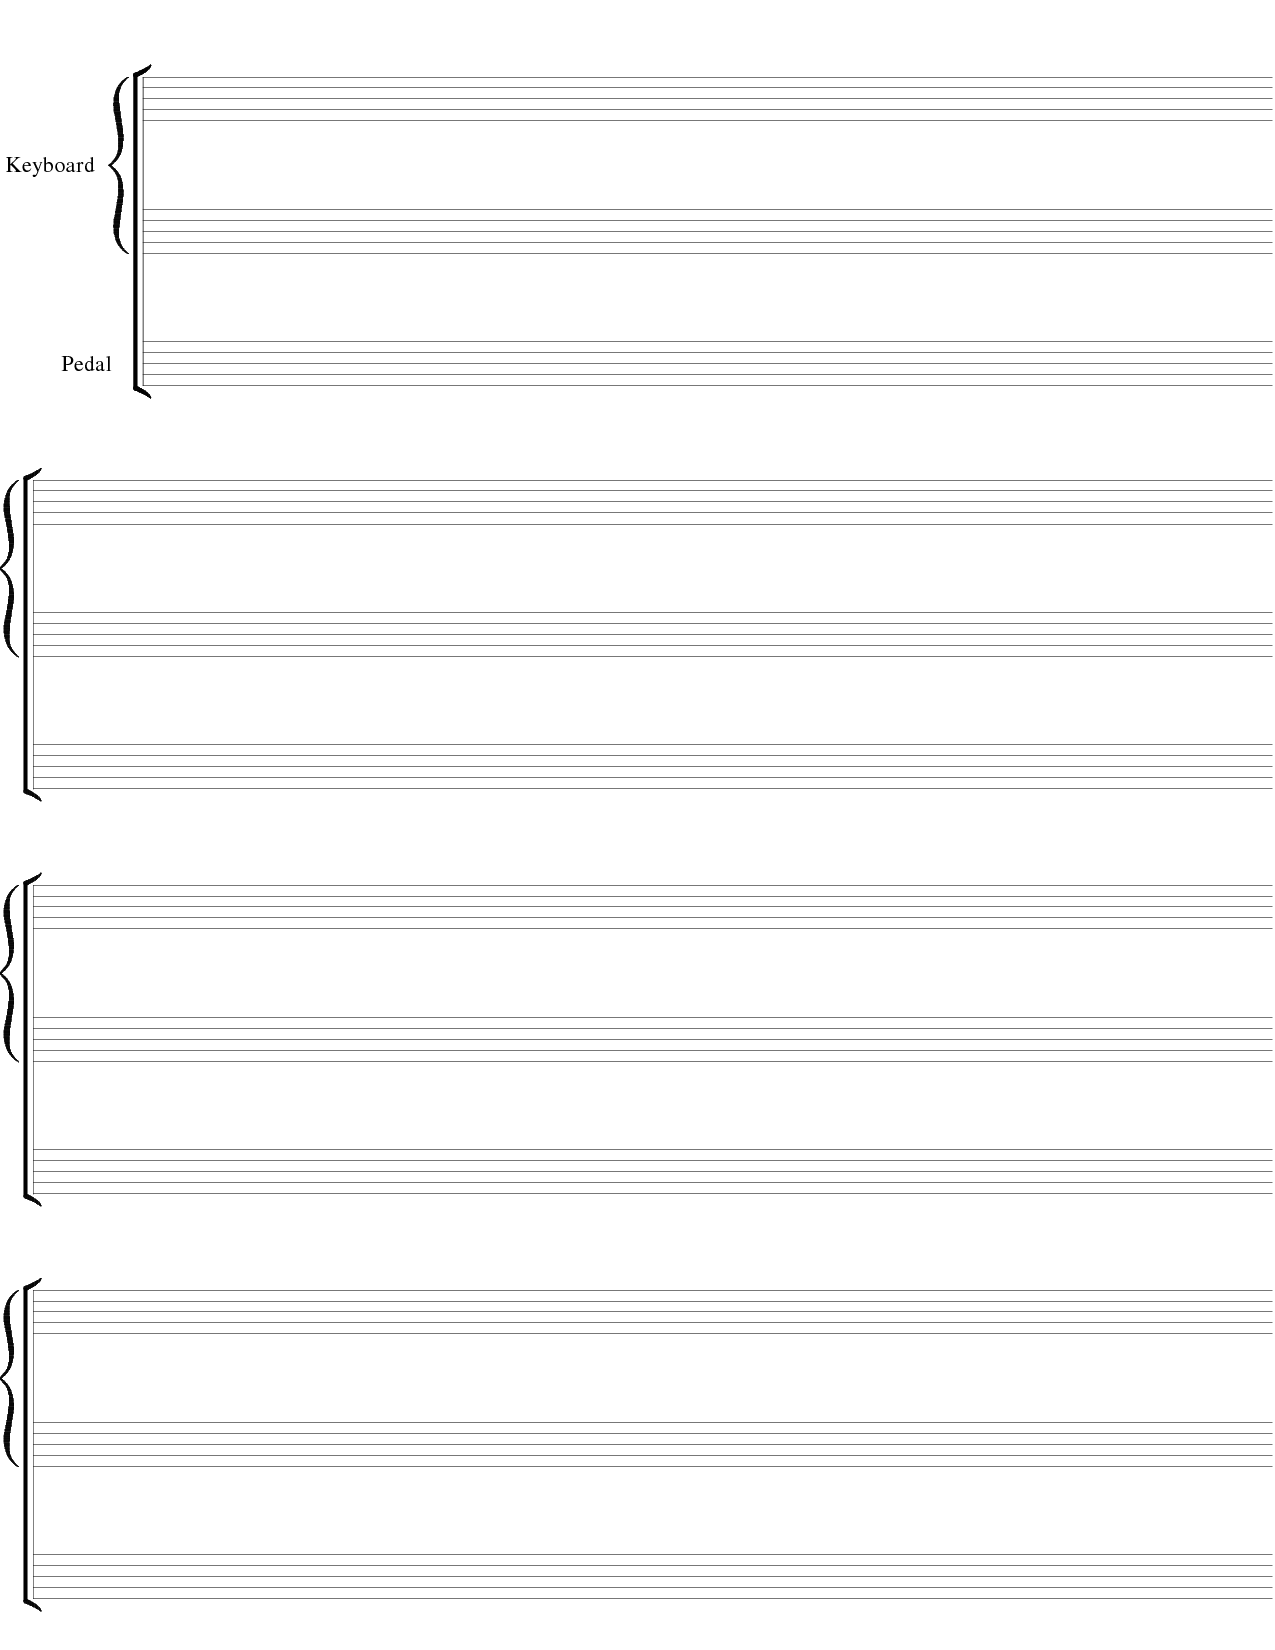 Blank sheet music clipart picture transparent stock Blank Sheet Music Clipart - Clipart Kid picture transparent stock